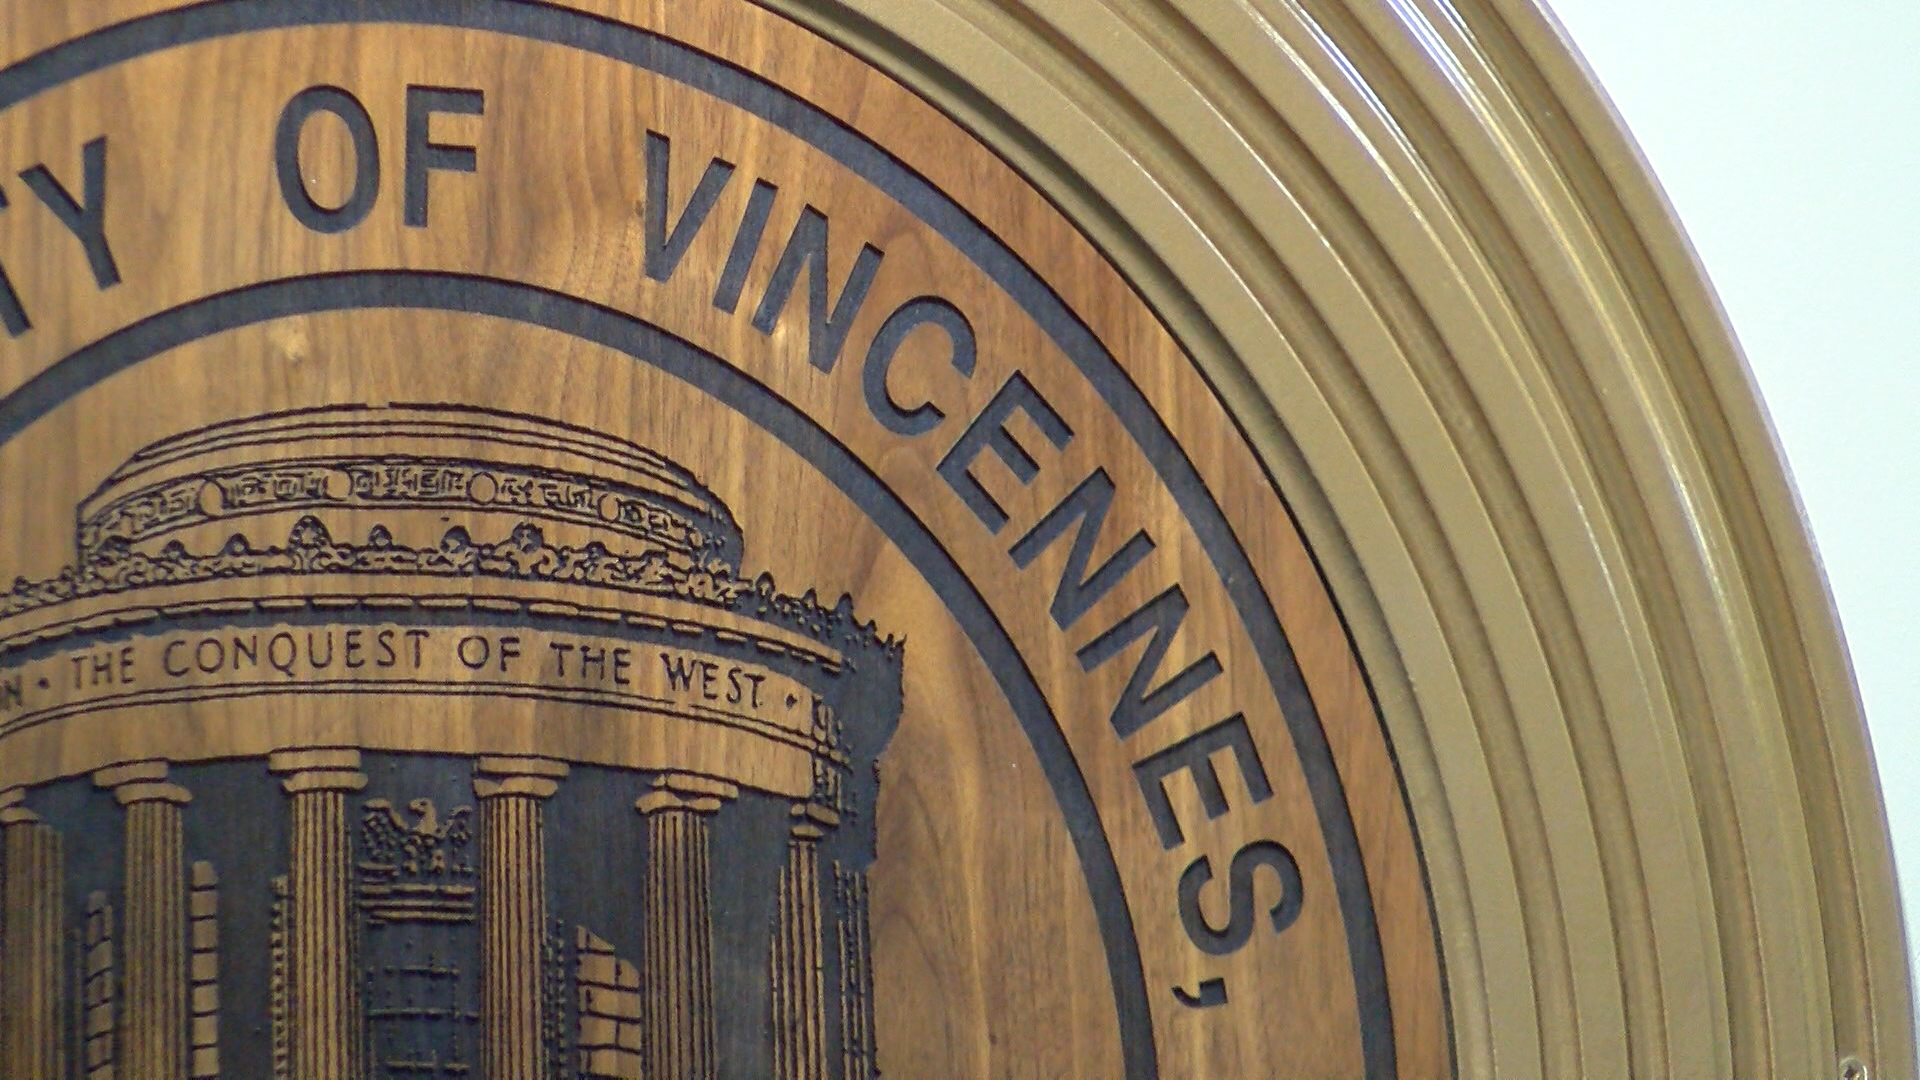 vincennes sign_1480714051976.jpg